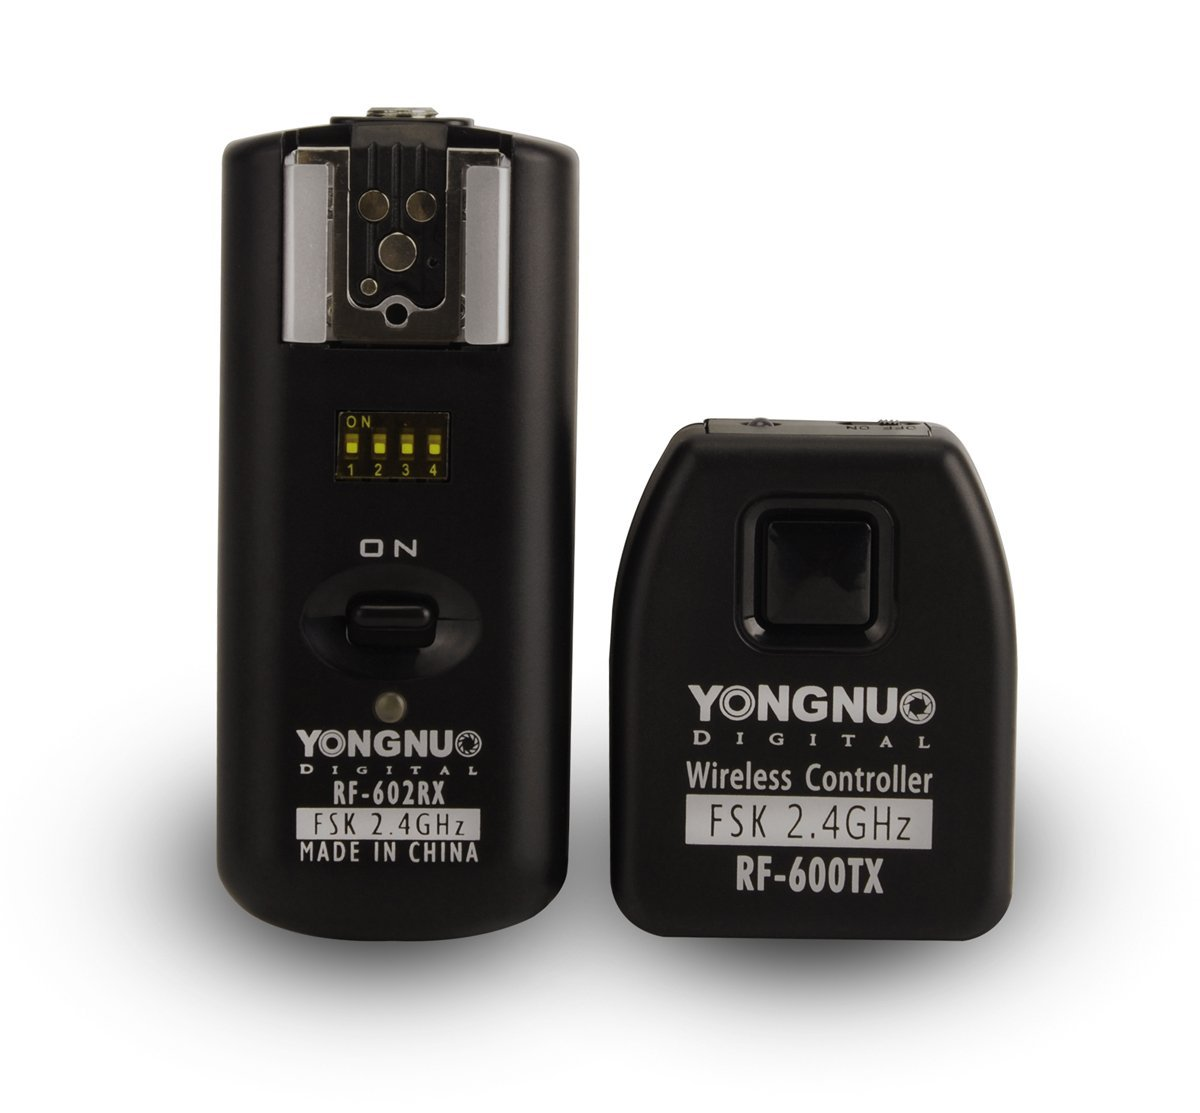 YONGNUO RF-602/N 2.4GHz Wireless Remote Flash Synchronized Trigger Remote Control for Nikon SB-900, SB-800, SB-600, SB-28, SB-27, SB-26, SB-25, SB-24 Cameras